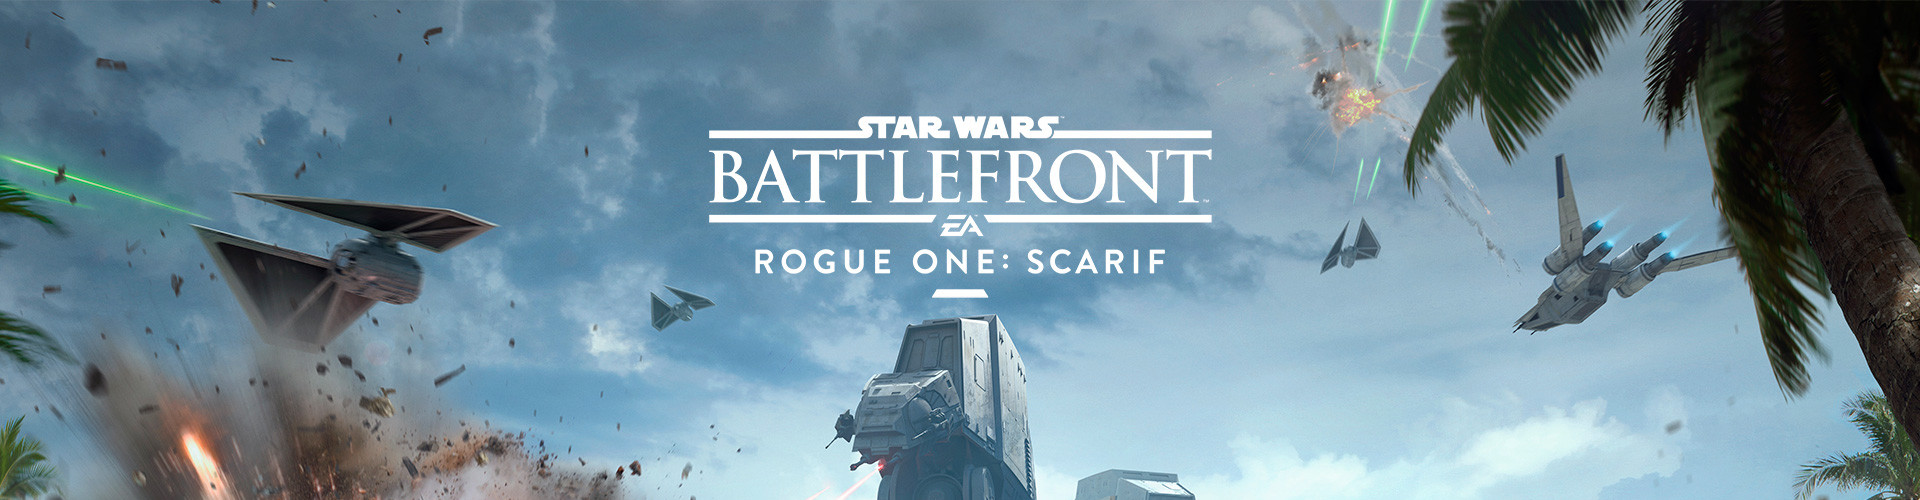 "News of ""Star Wars Battlefront - Rogue One: Scarif"" marked the game's 1-year anniversary."